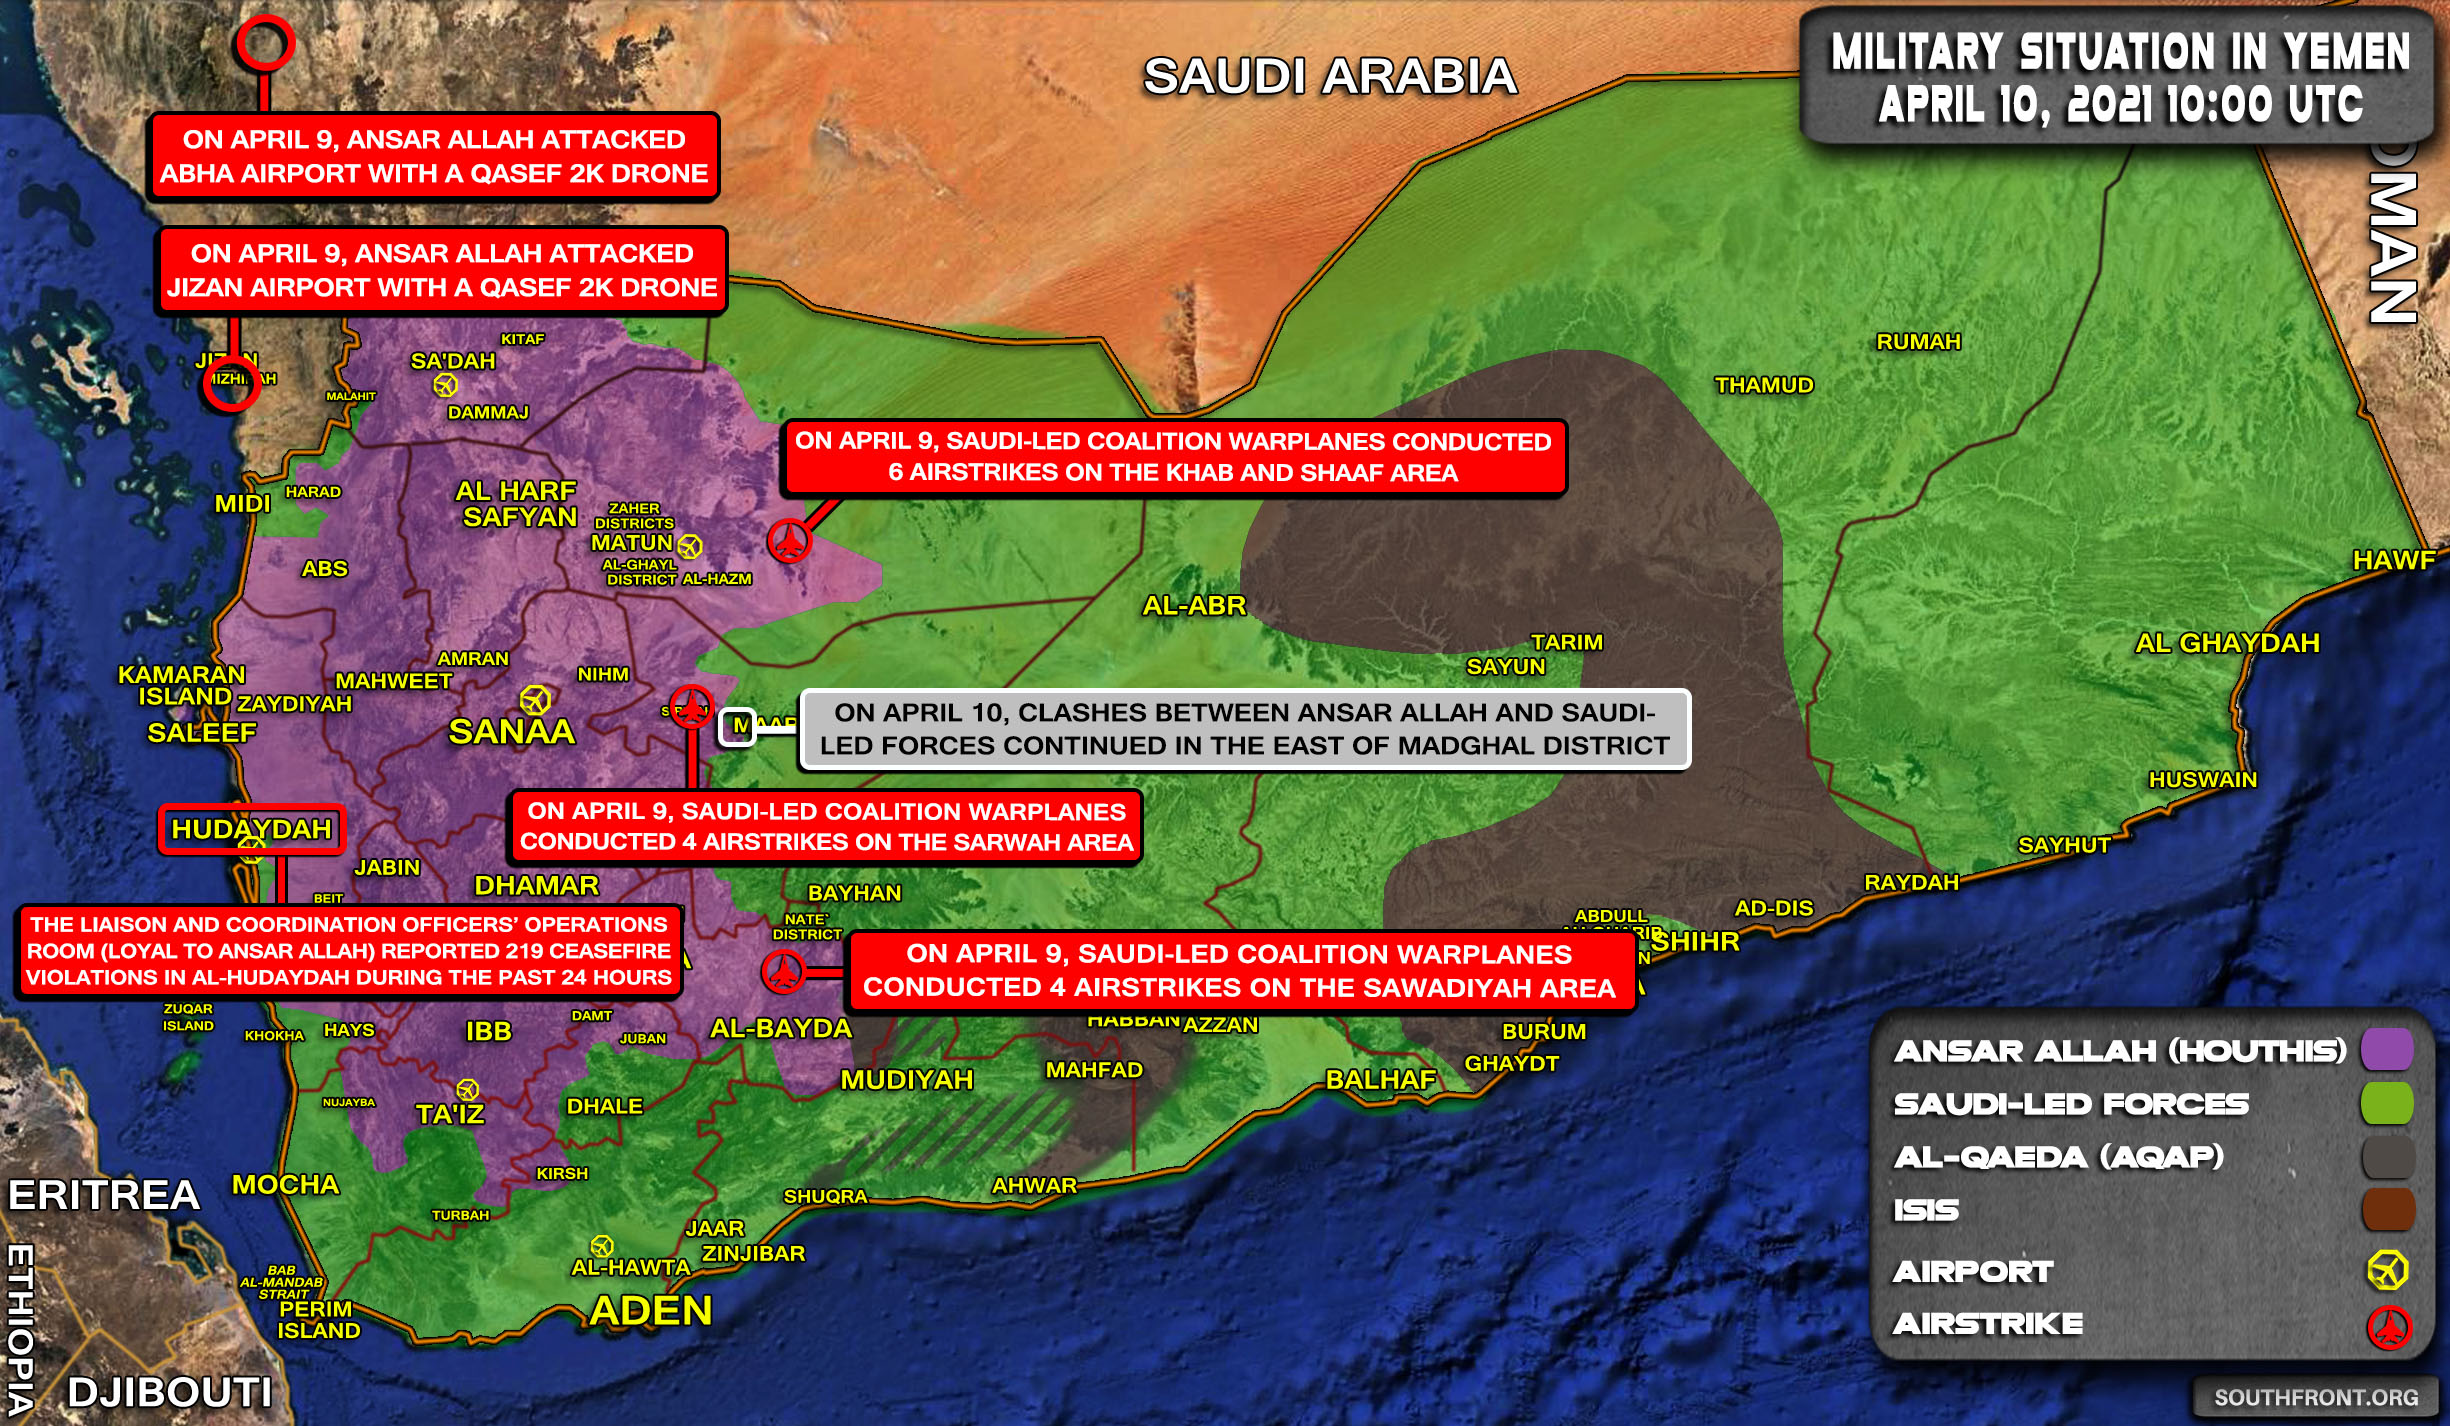 Military Situation In Yemen On April 10, 2021 (Map Update)